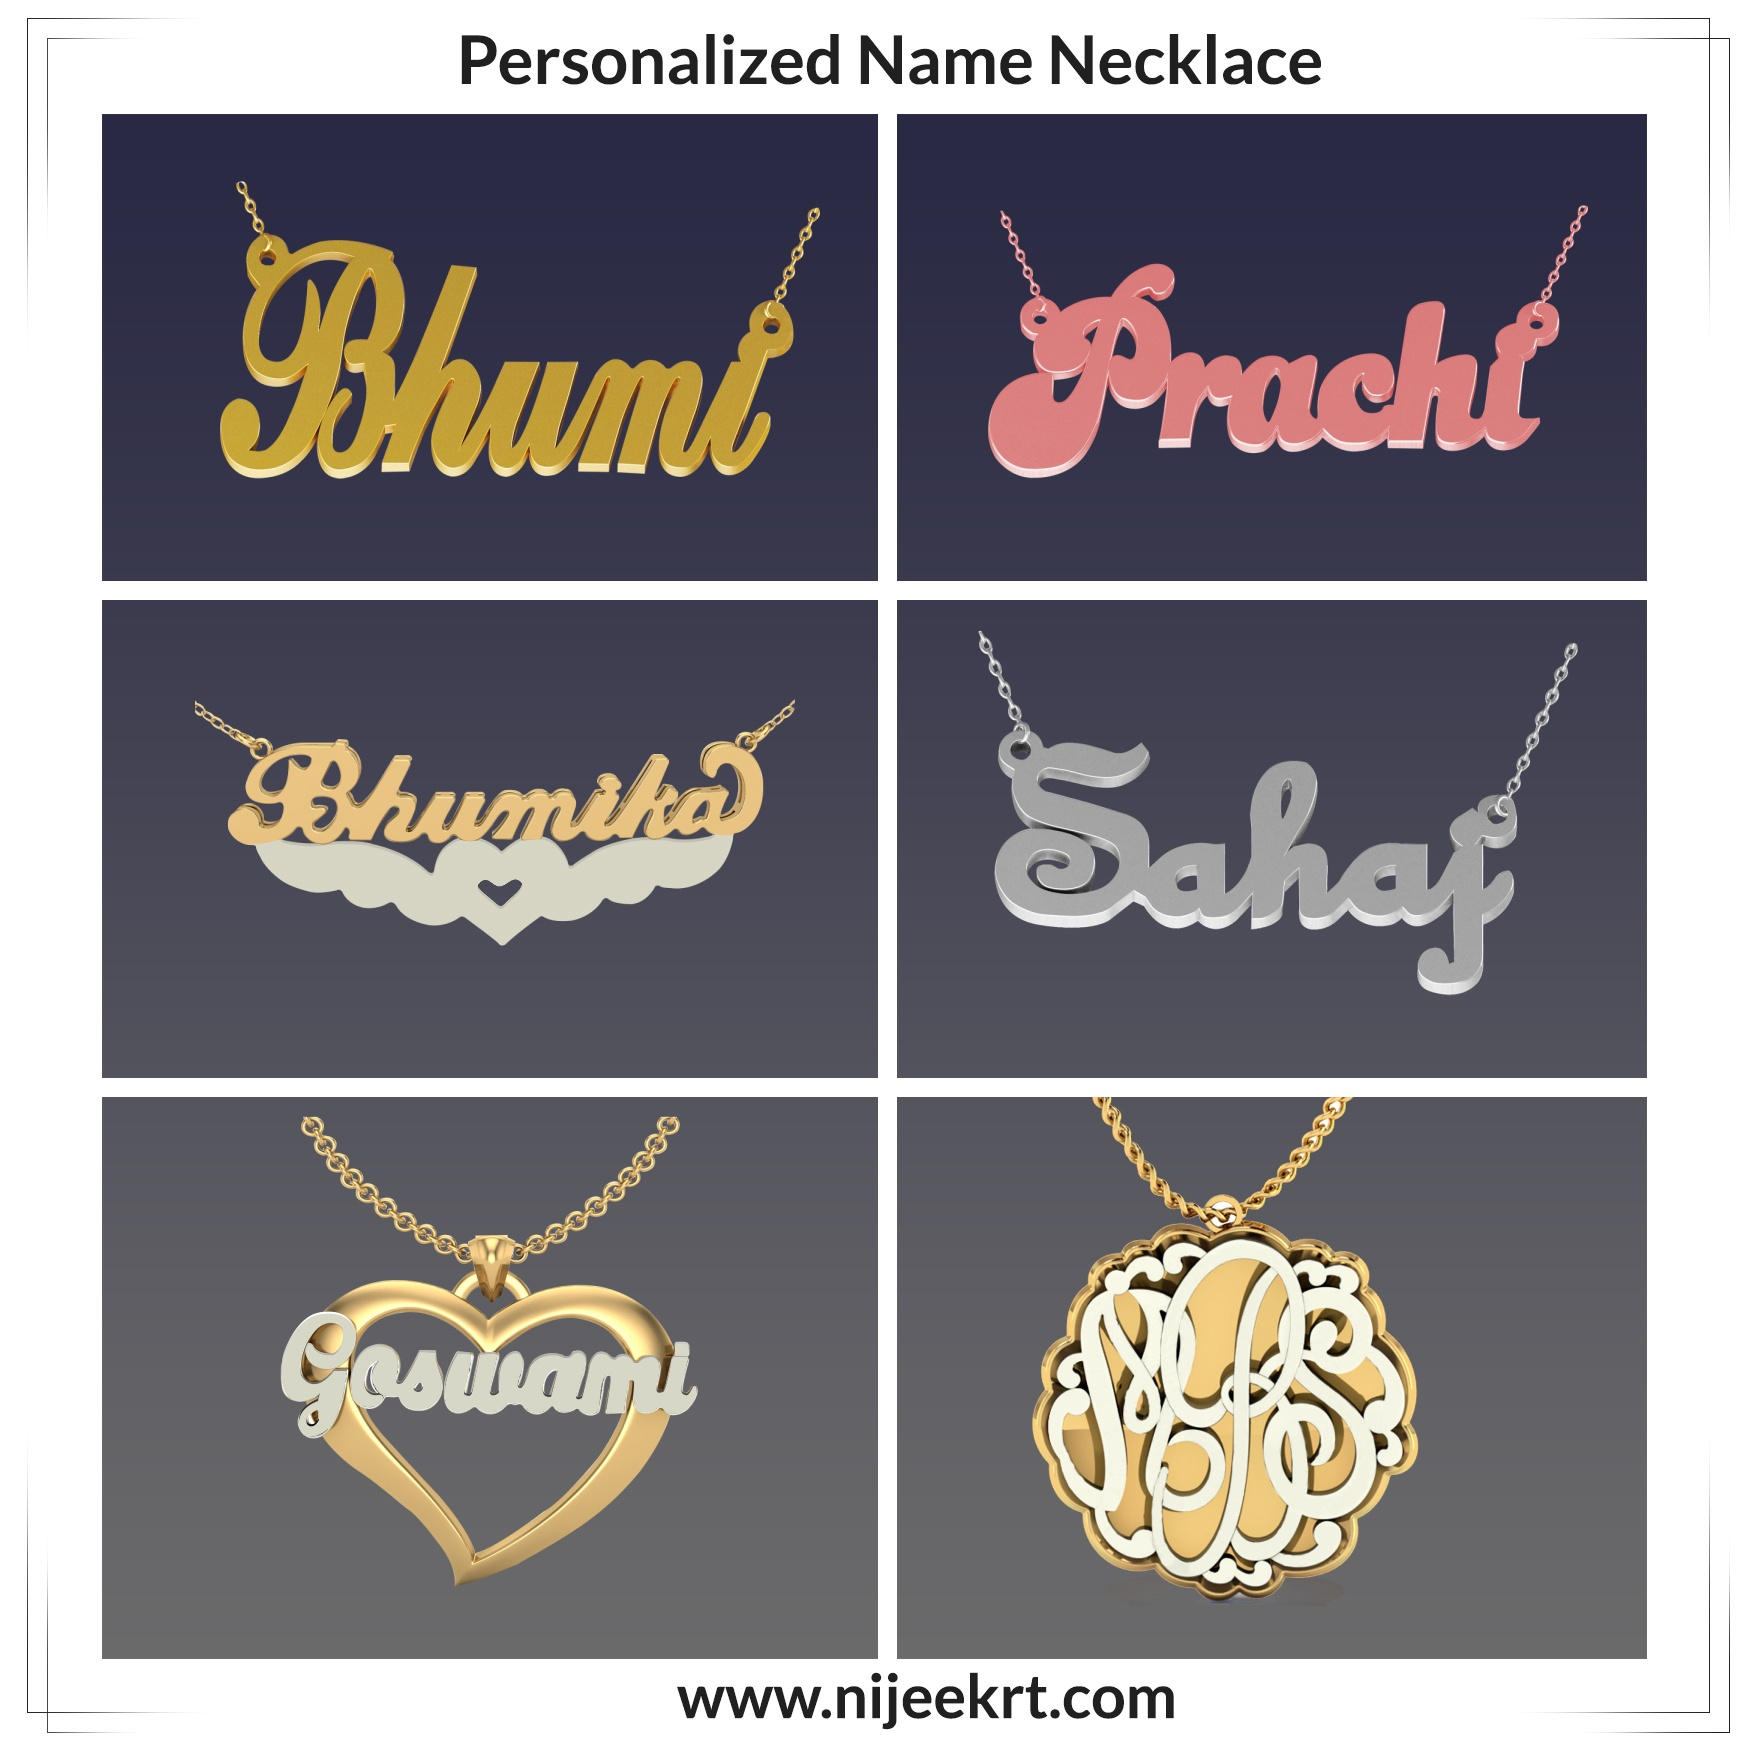 7b9f9e0efc0a8 Would it be okay to get my girlfriend a 'name' necklace with my ...